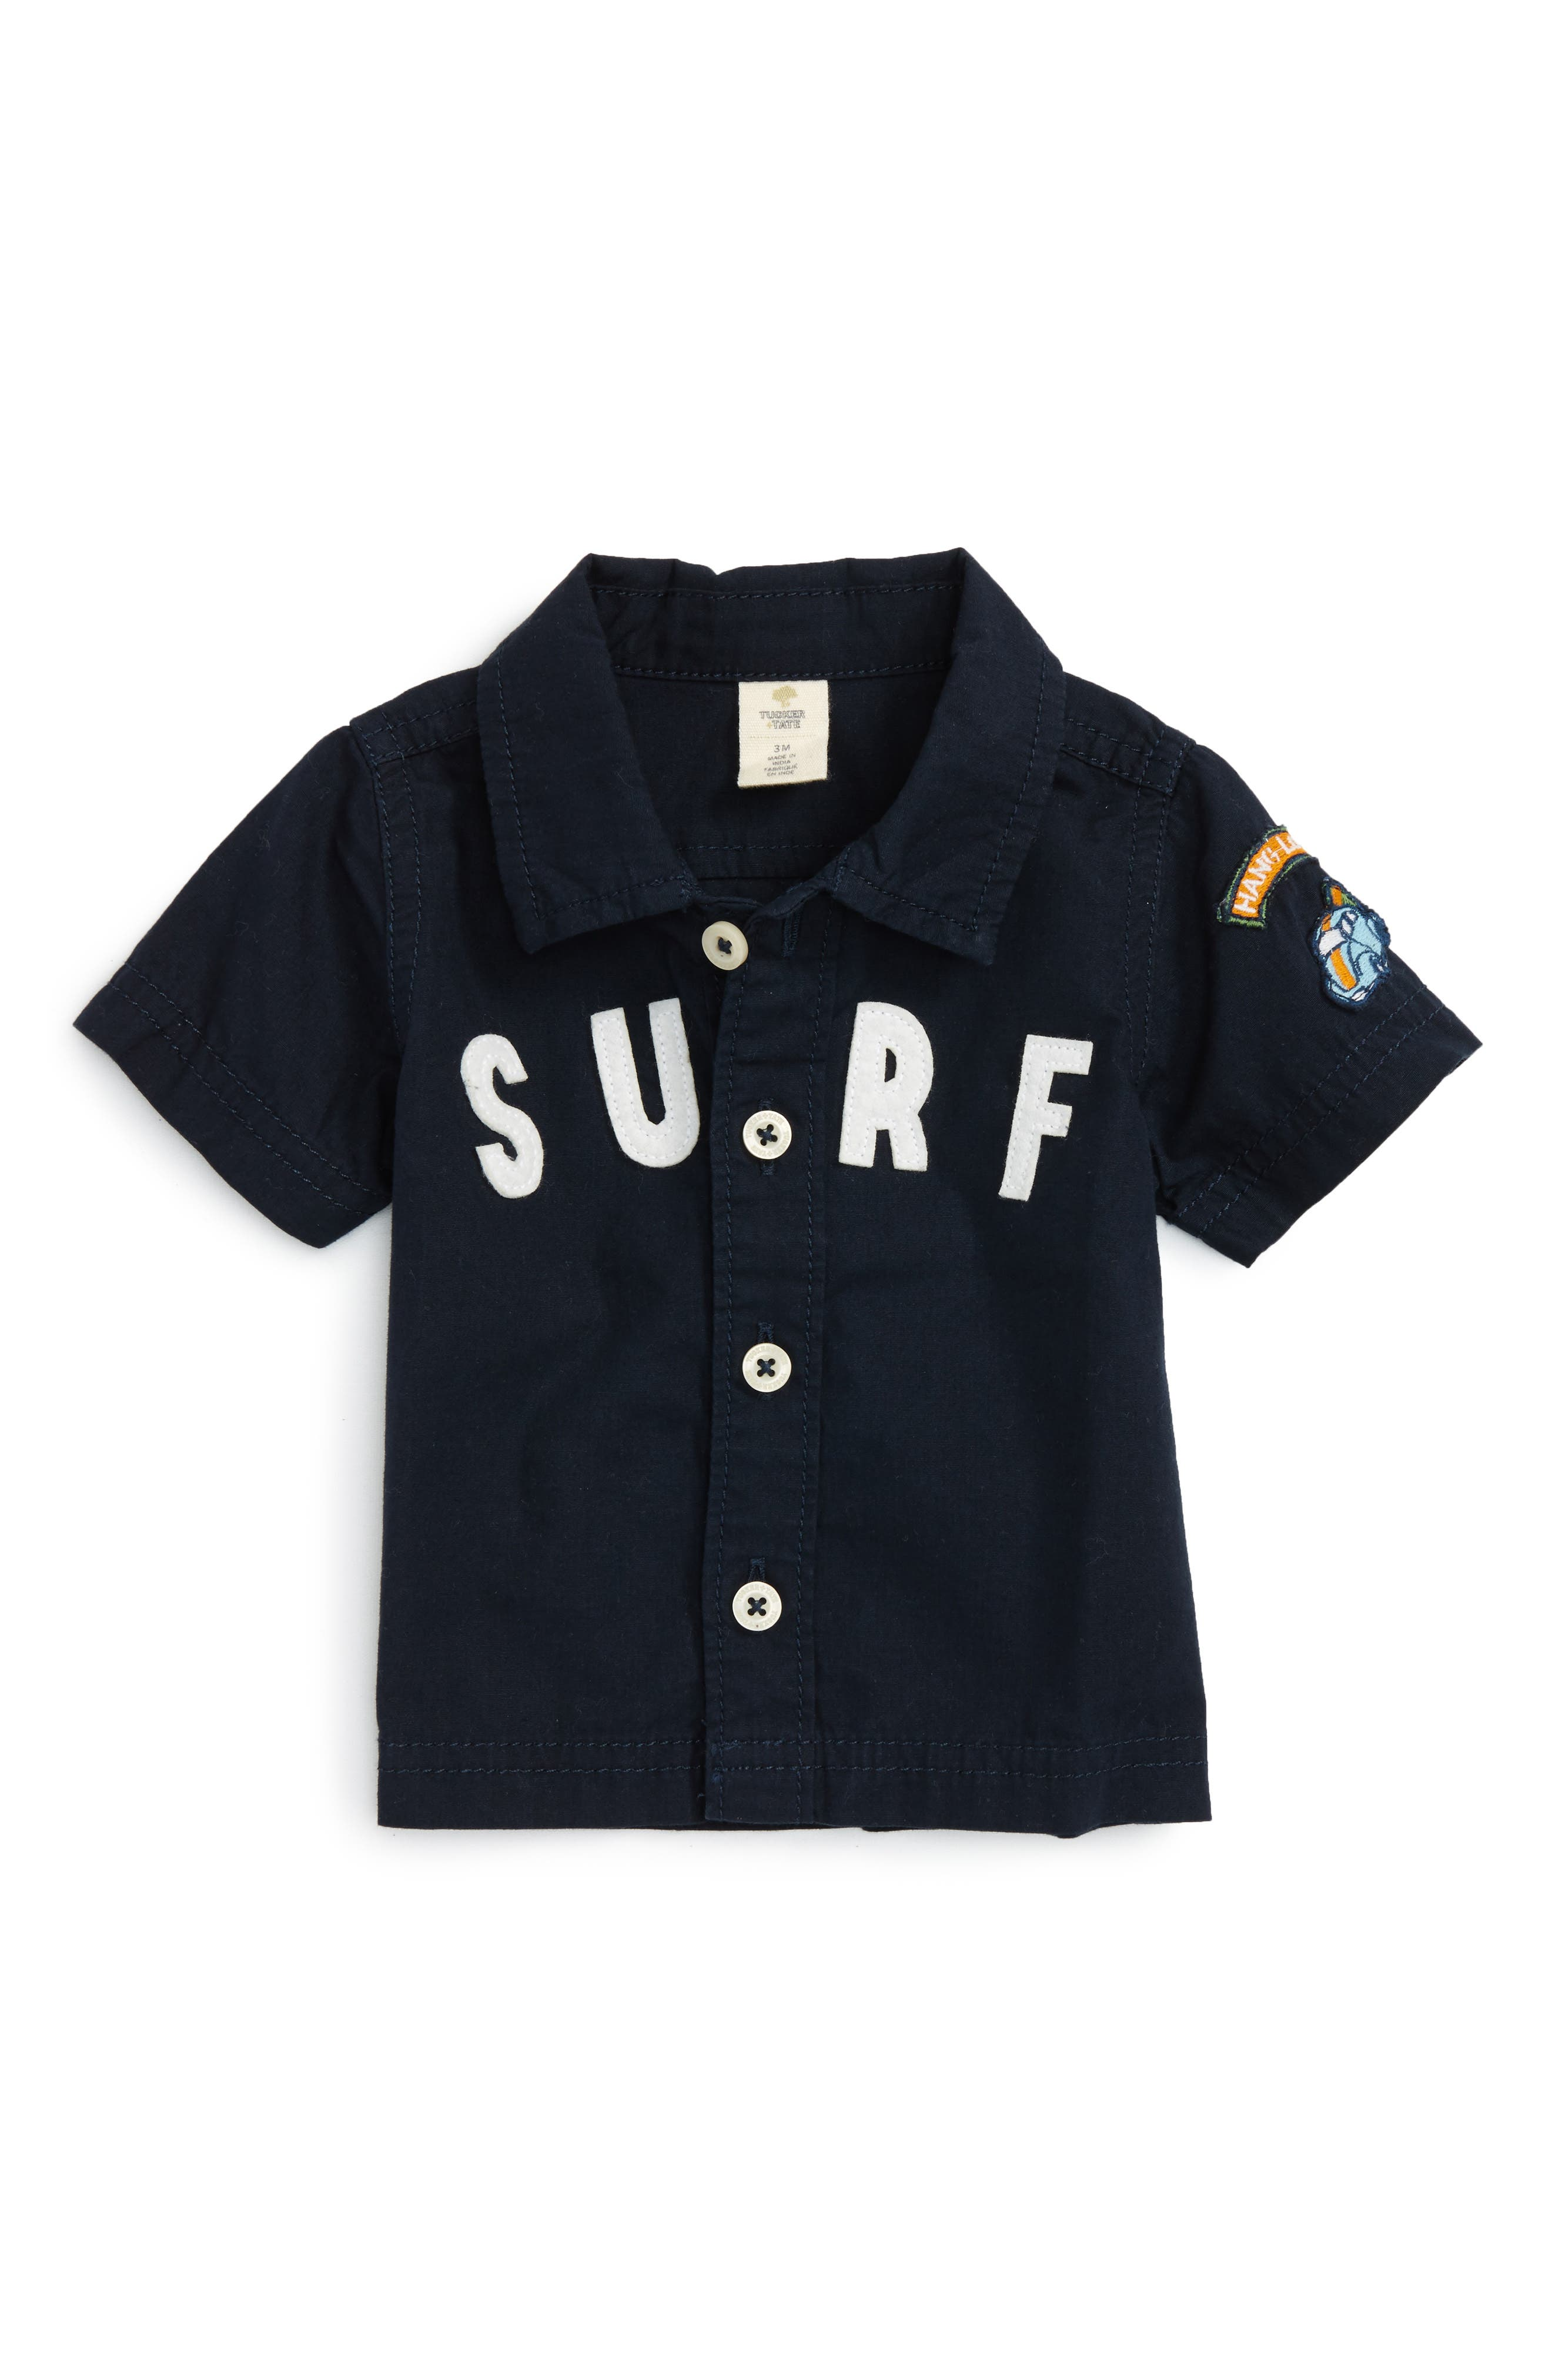 Tucker + Tate Surf Appliqué Woven Shirt (Baby Boys)